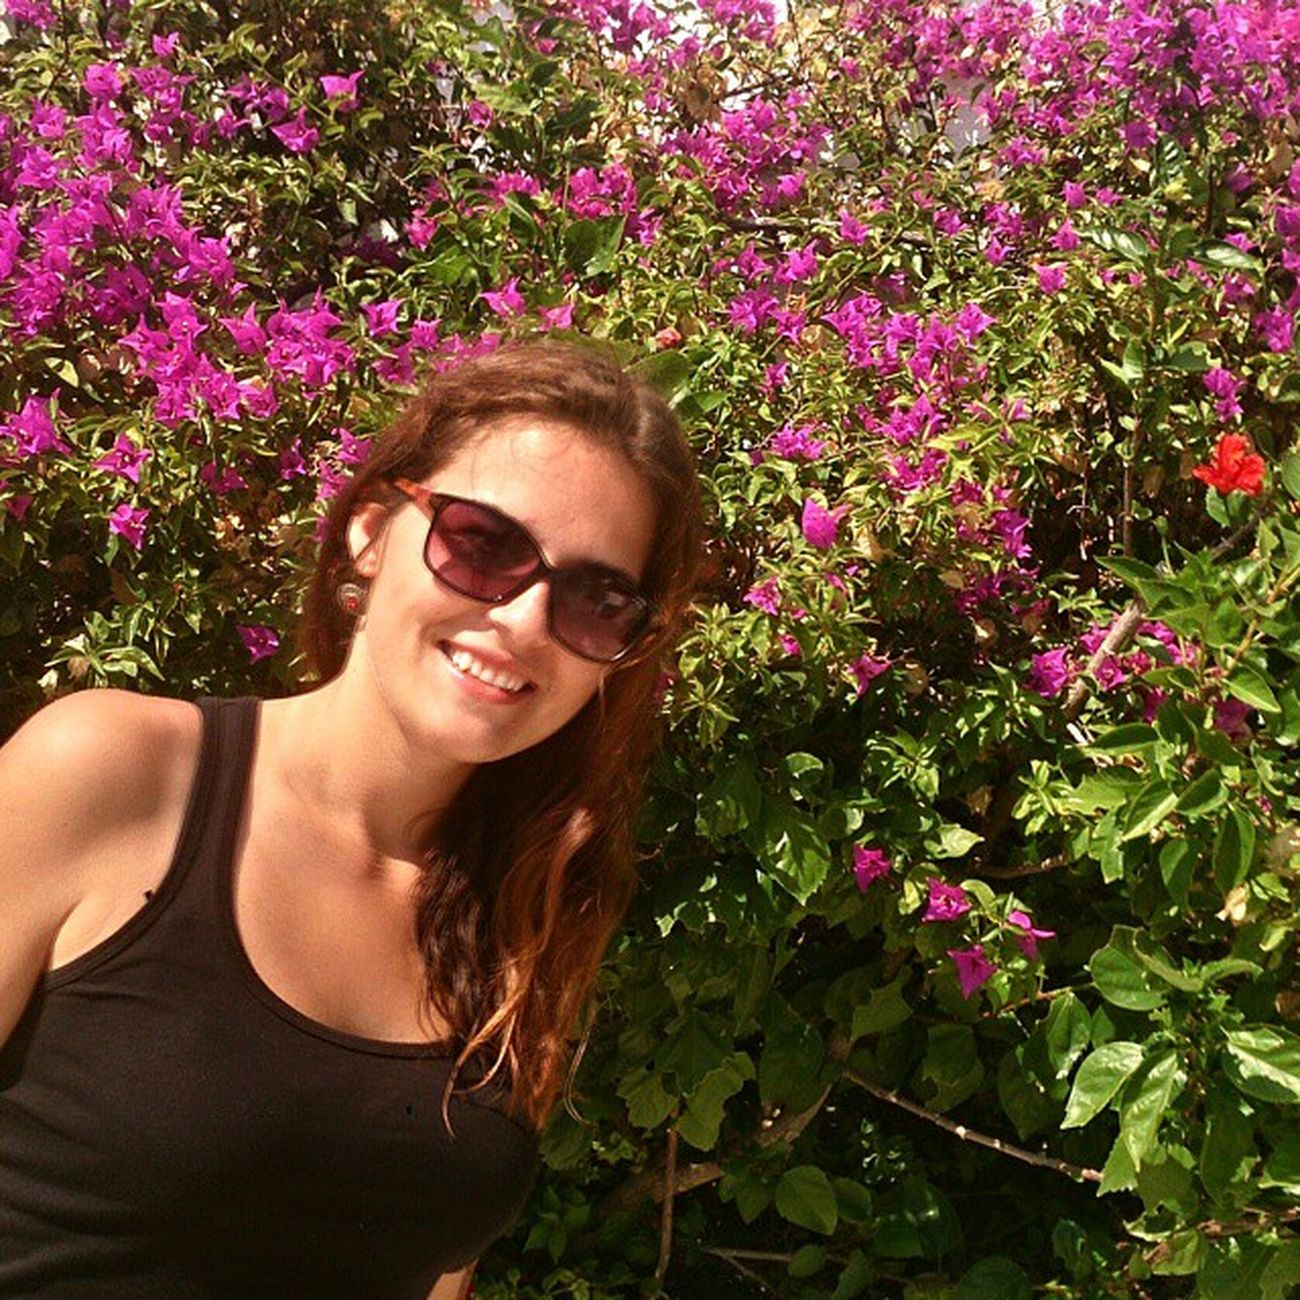 Bodrum Türkiye Brunette Sun flowers pink smile Turkey Autumn sea aegean coast lietuvaitė lifetime sand travel study bodrumbayresort çiçek